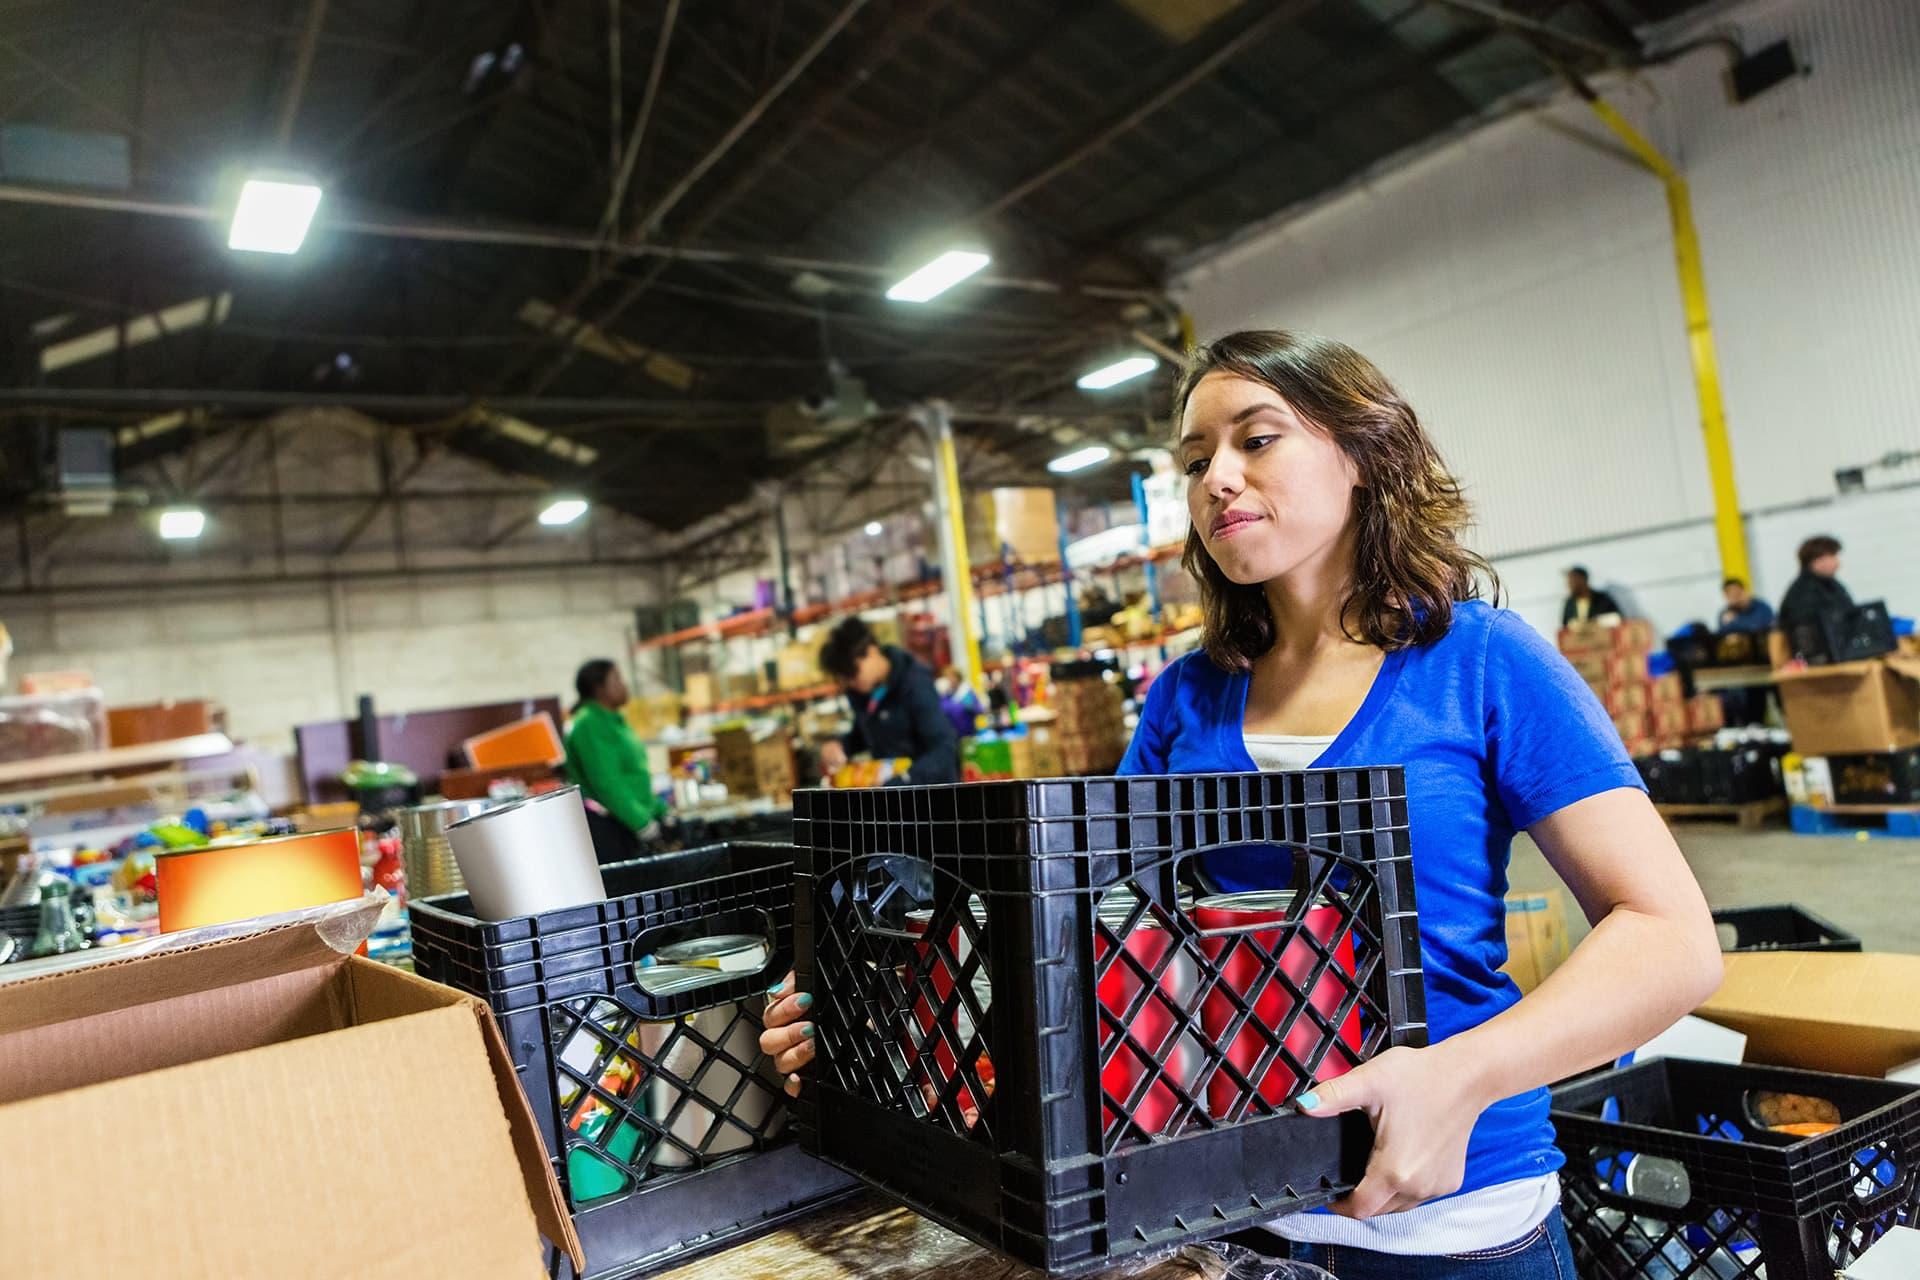 Non-profit insurance for woman carrying a crate of supplies in a warehouse